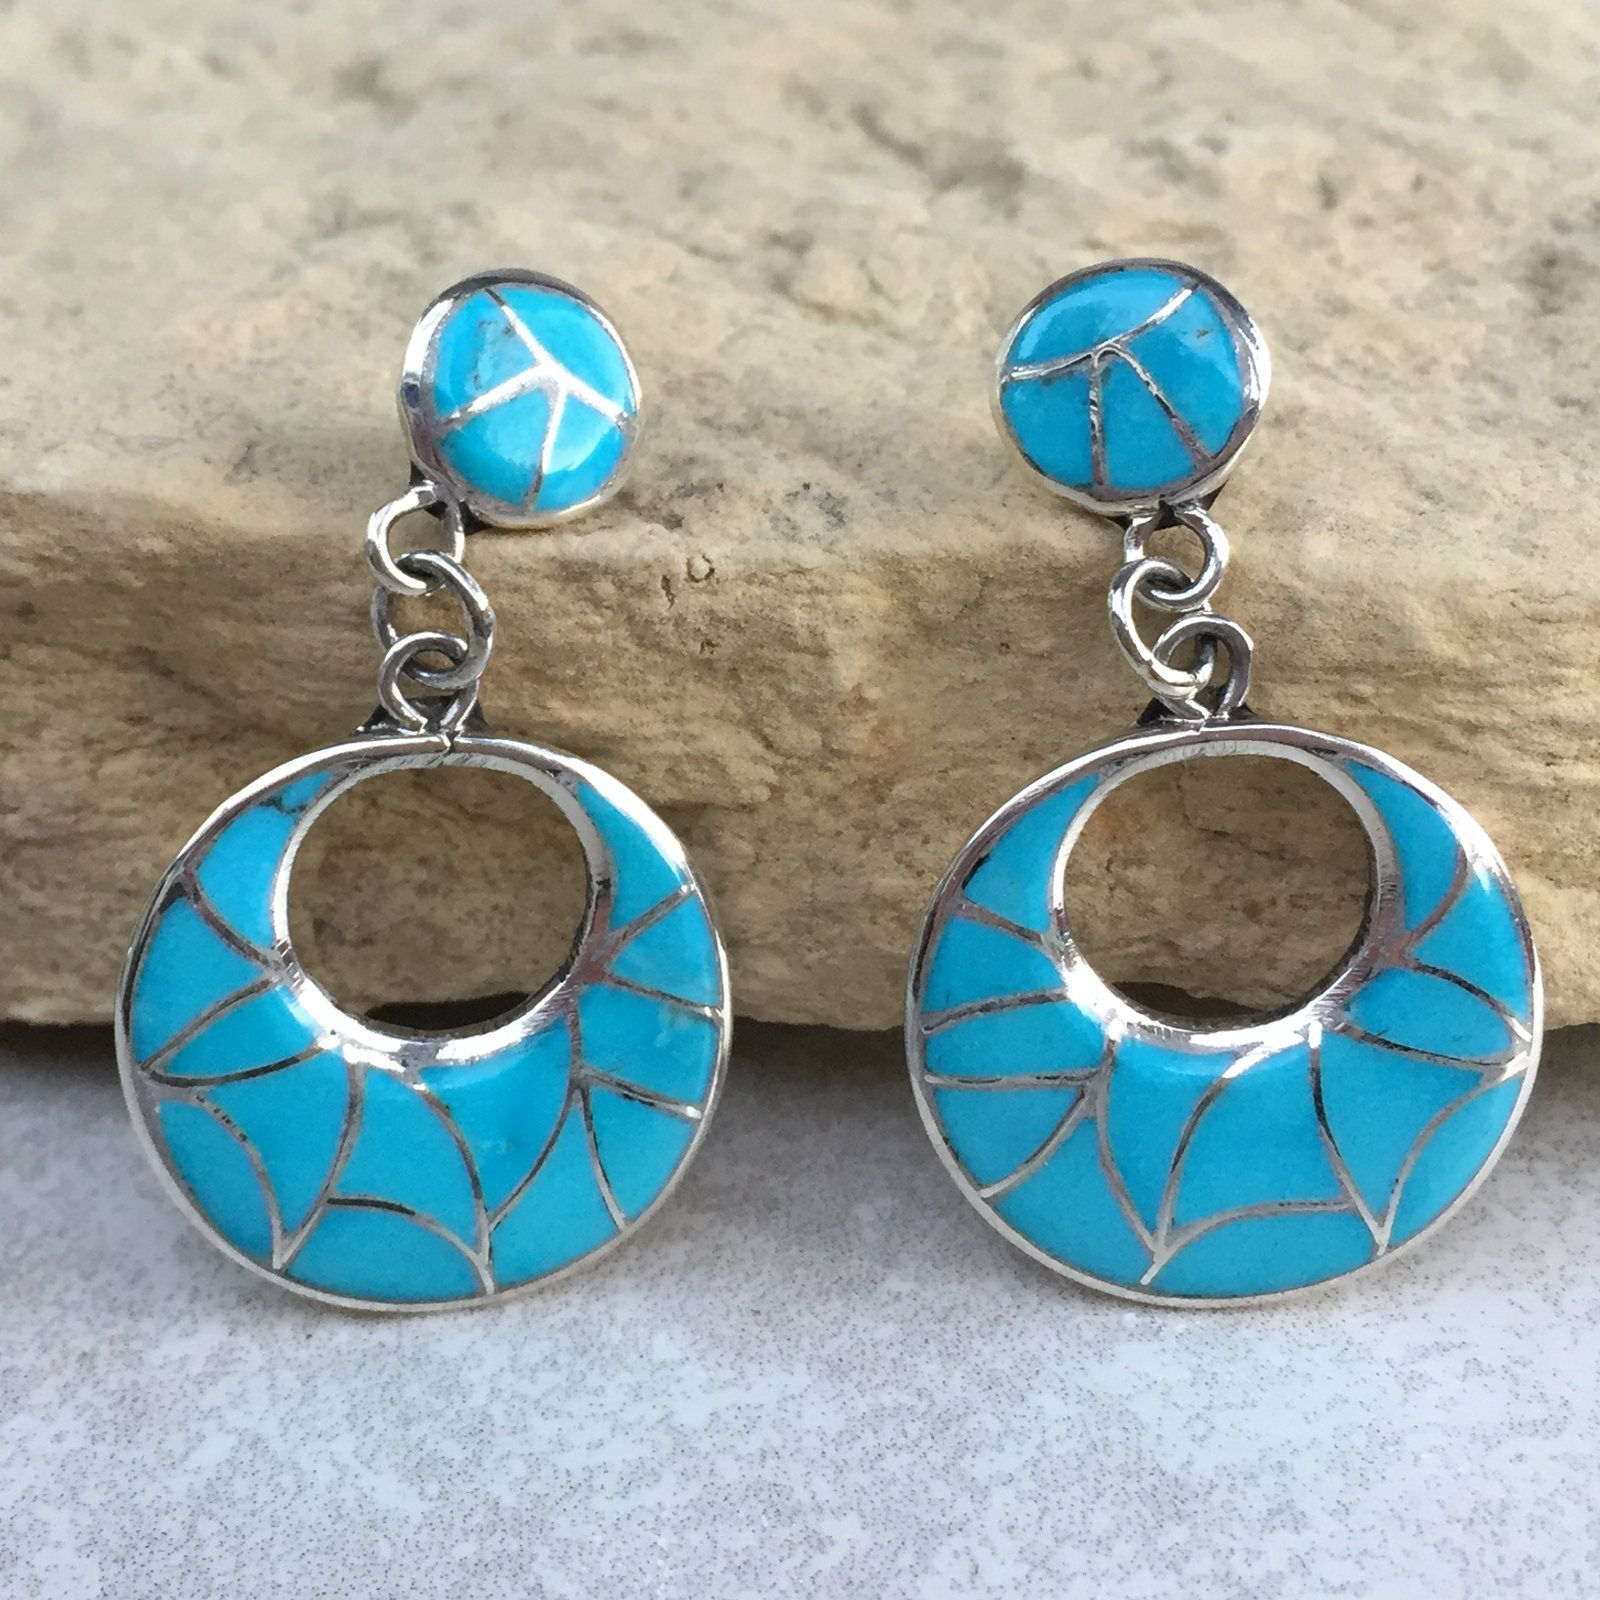 beauty jewelry plaza sleeping artists jewellery on american earrings category stone the malouf turquoise native archives